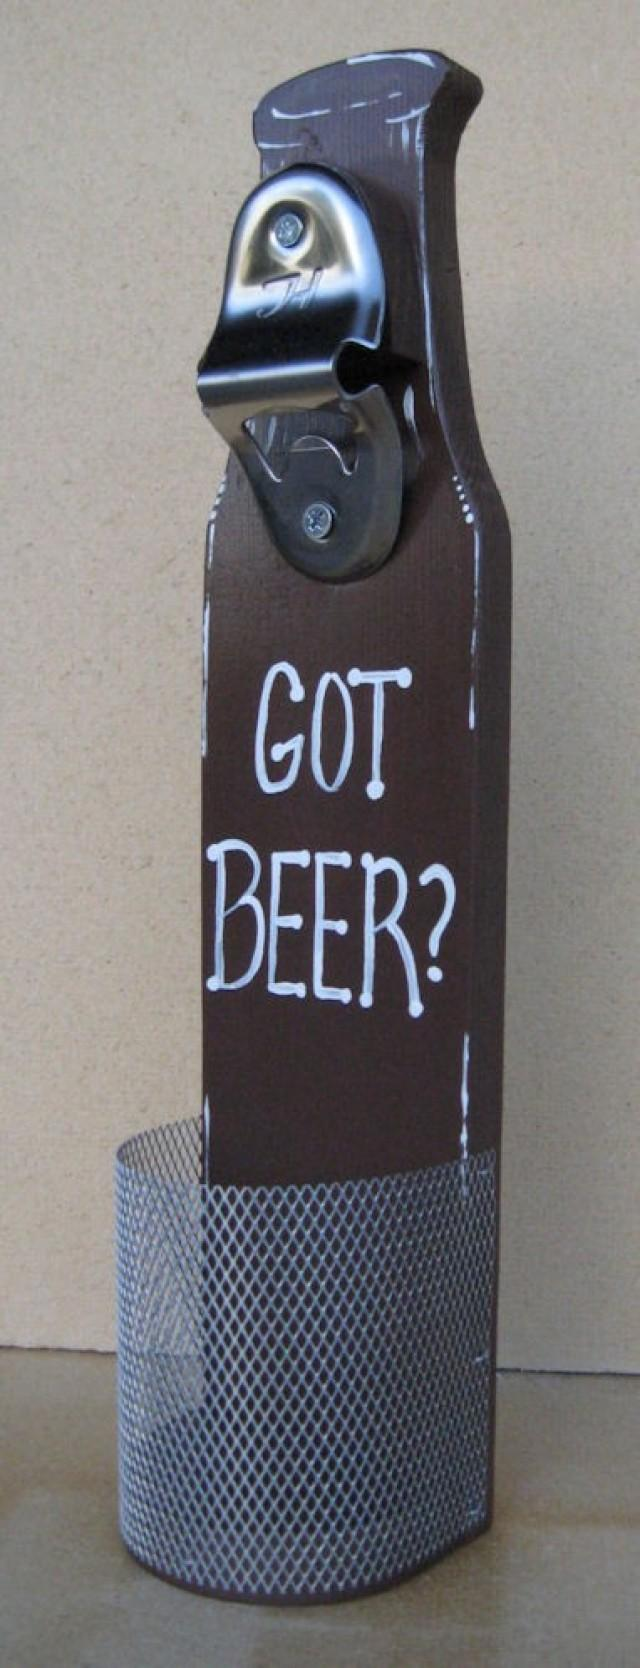 Beer bottle opener with cap catcher wall mounted got beer for my groomsmen 2266608 weddbook - Wall mounted beer bottle opener cap catcher ...